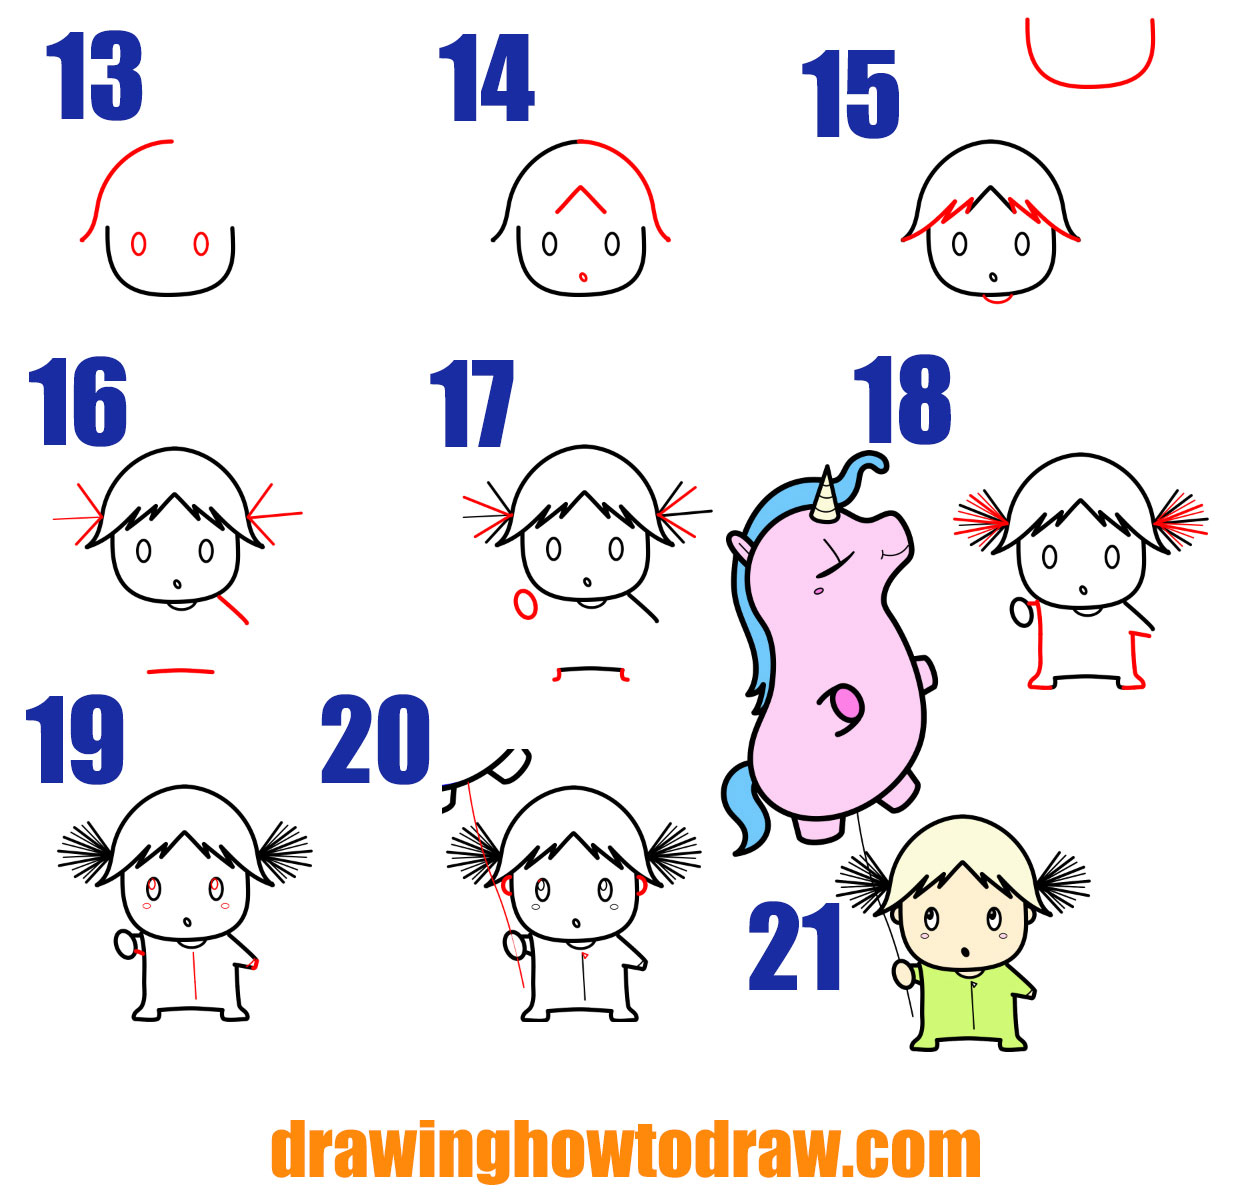 How to Draw a Cute Cartoon (Chibi) Girl with her Unicorn Balloon Simple Steps Drawing Lesson for Children